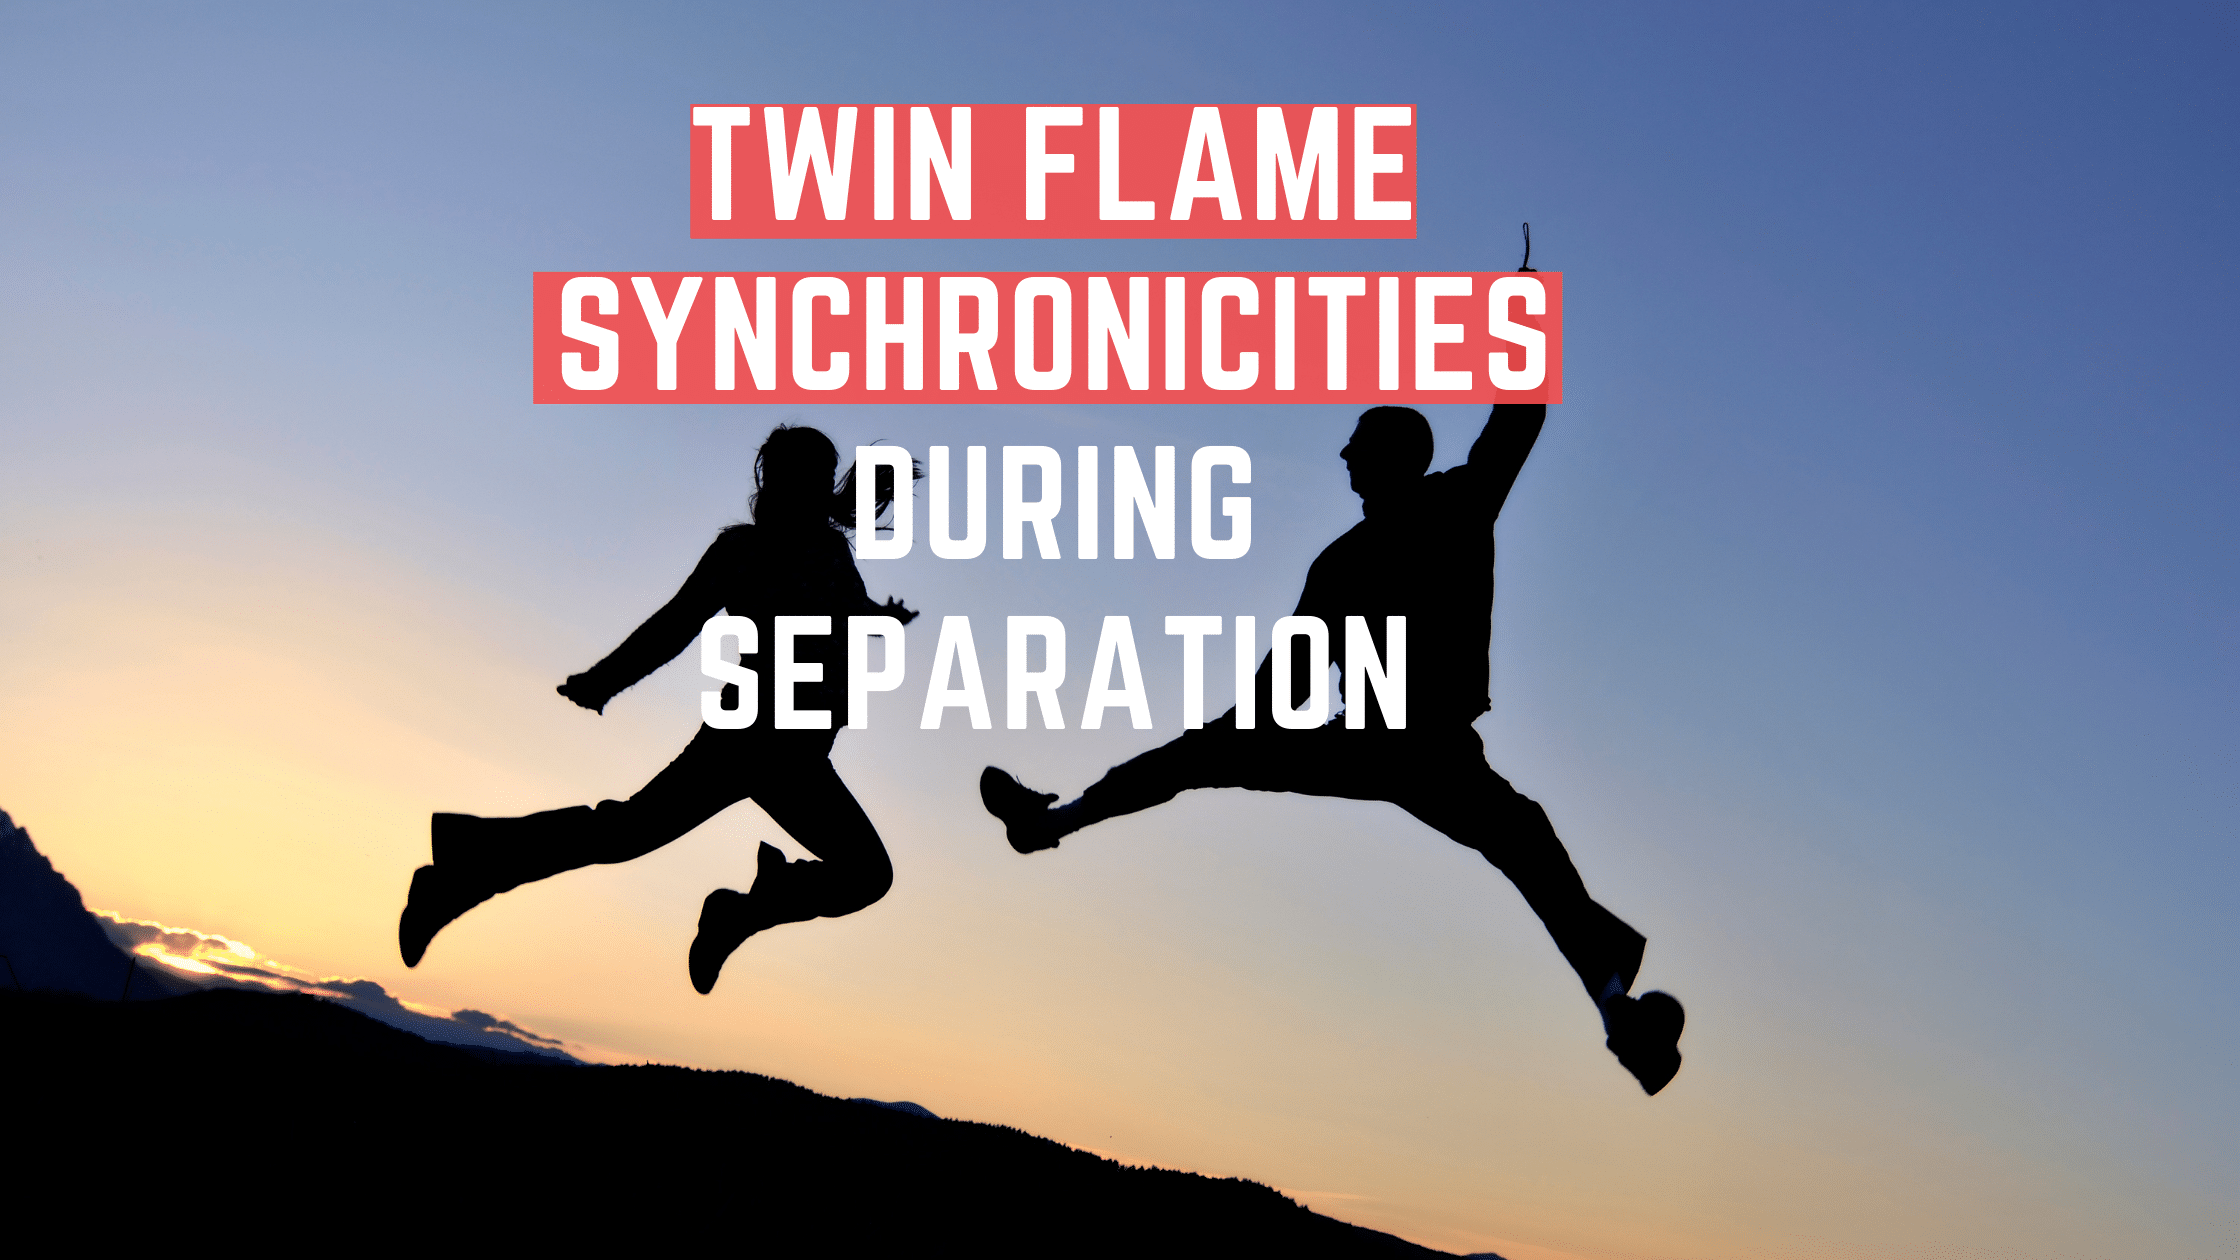 Twin Flame Synchronicities During Separation